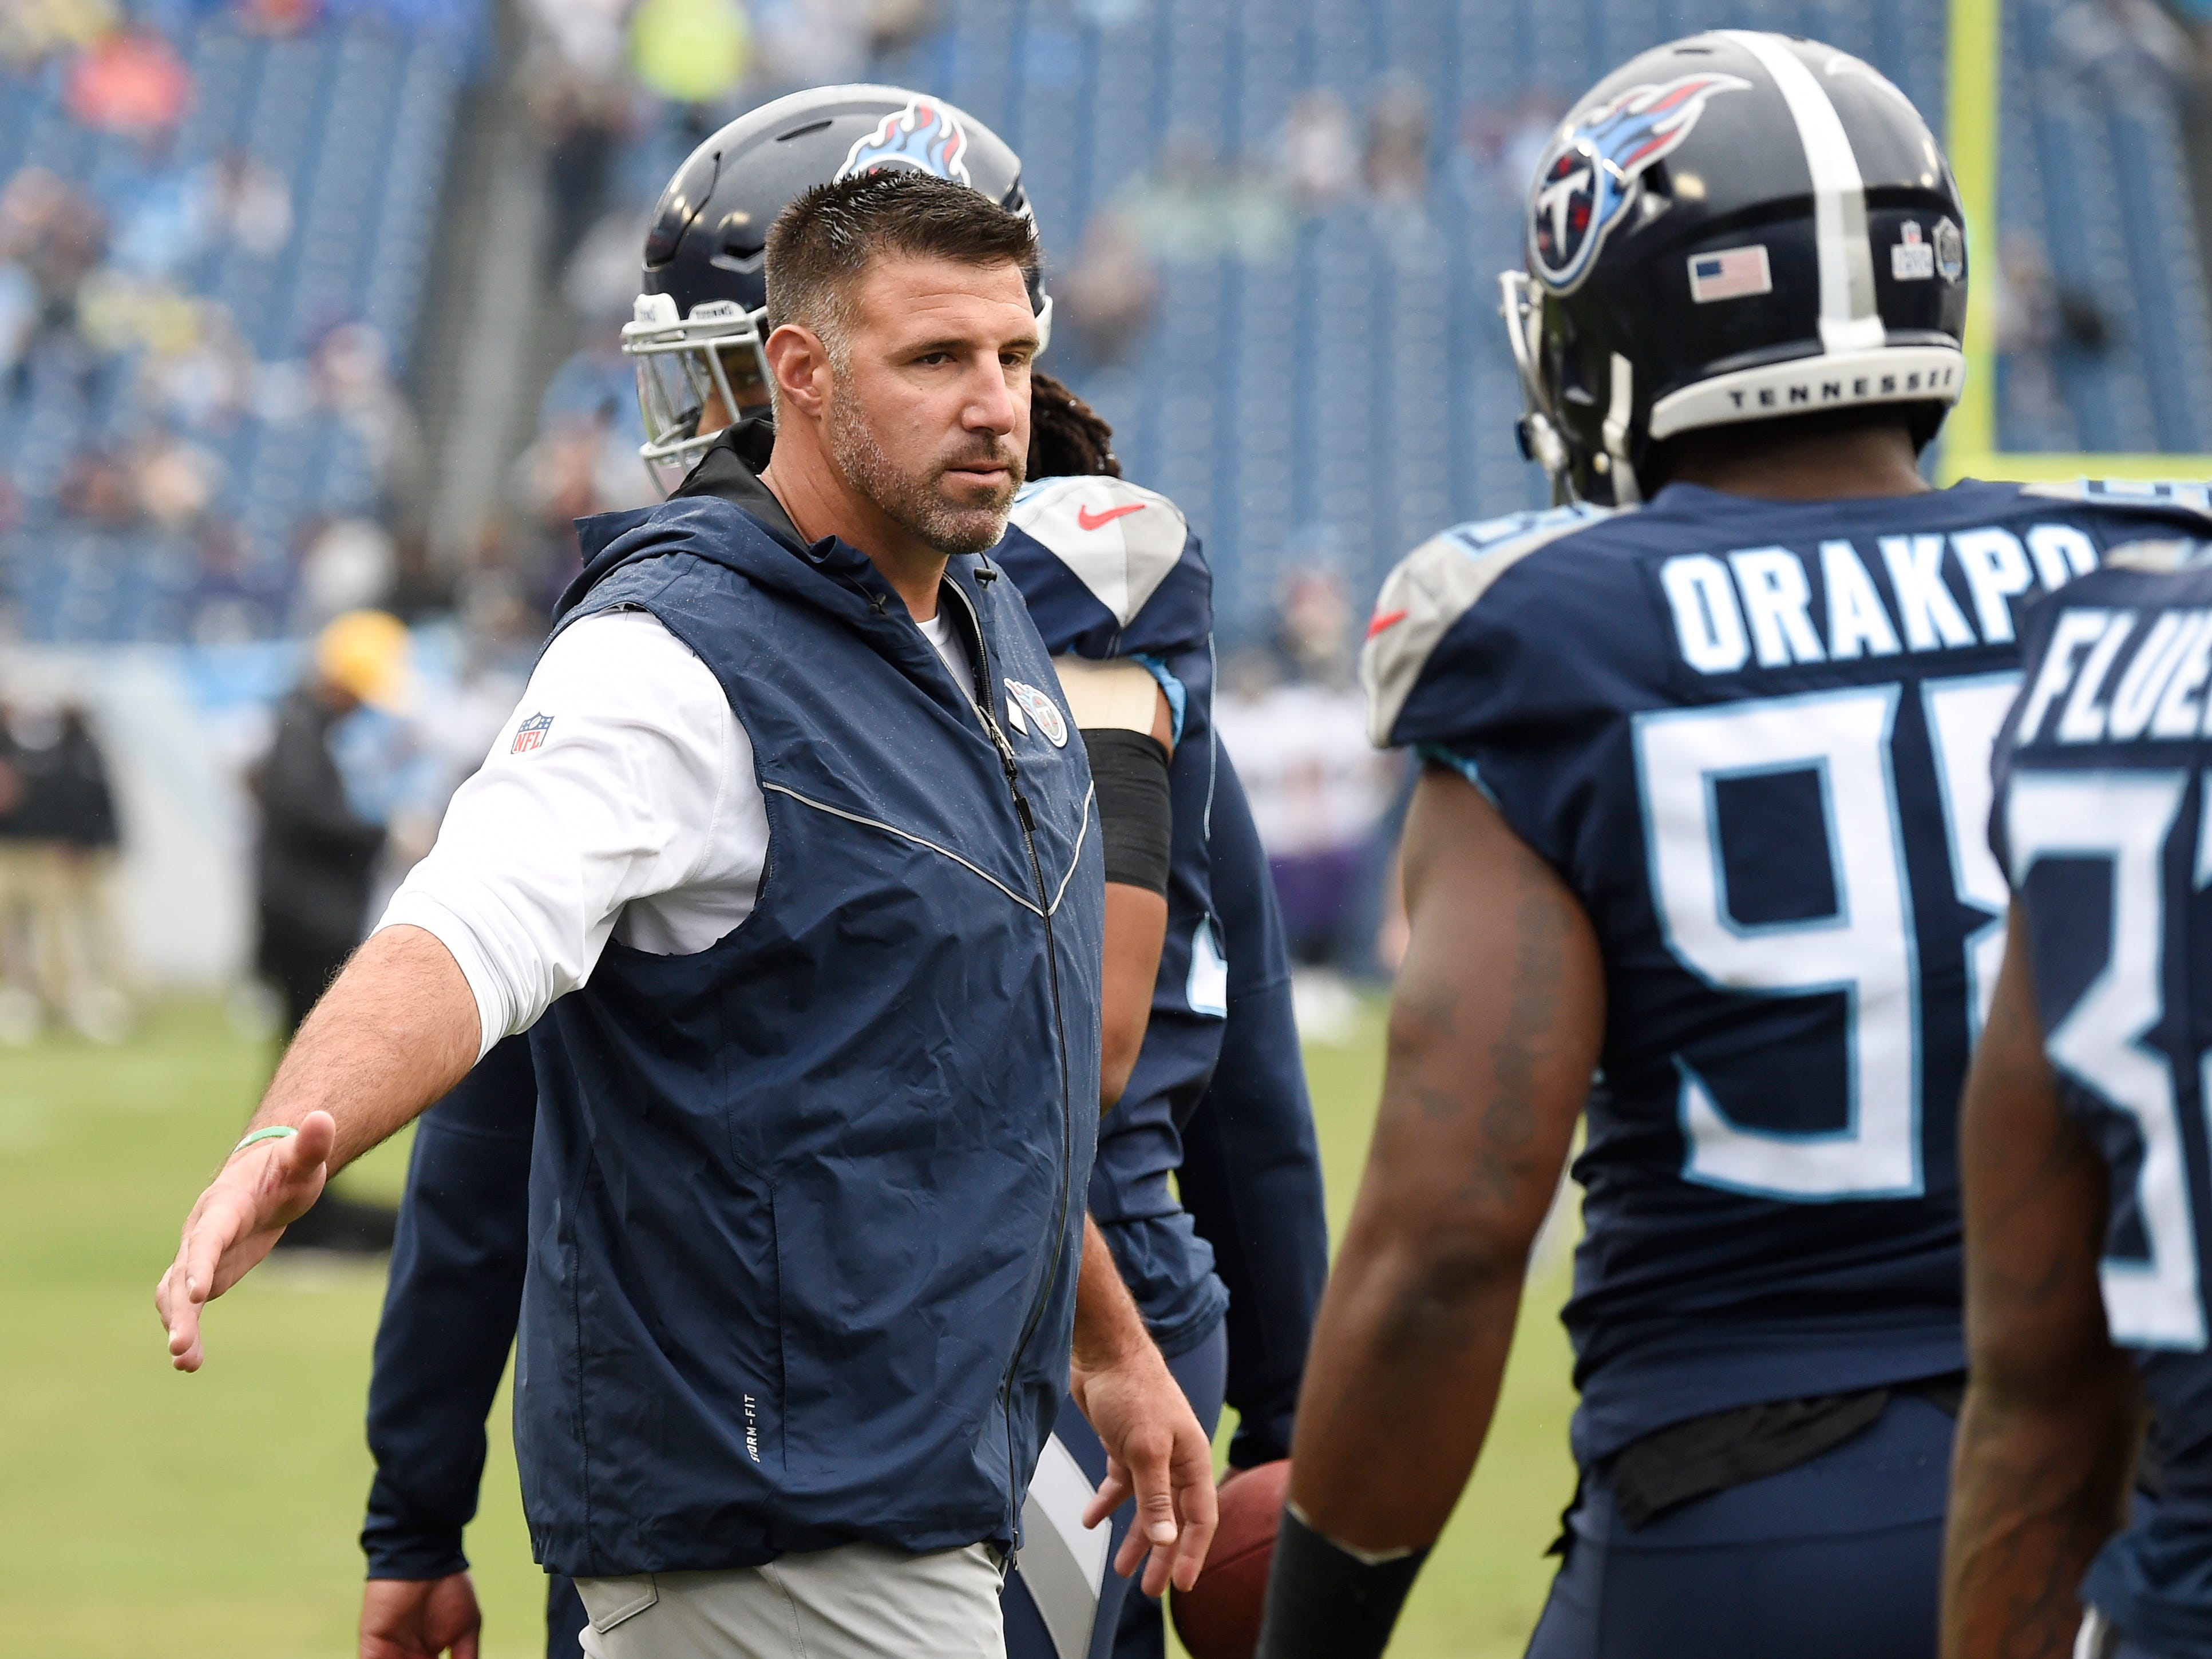 Titans head coach Mike Vrabel slaps hands with linebacker Brian Orakpo (98) before the game at Nissan Stadium Sunday, Oct. 14, 2018, in Nashville, Tenn.